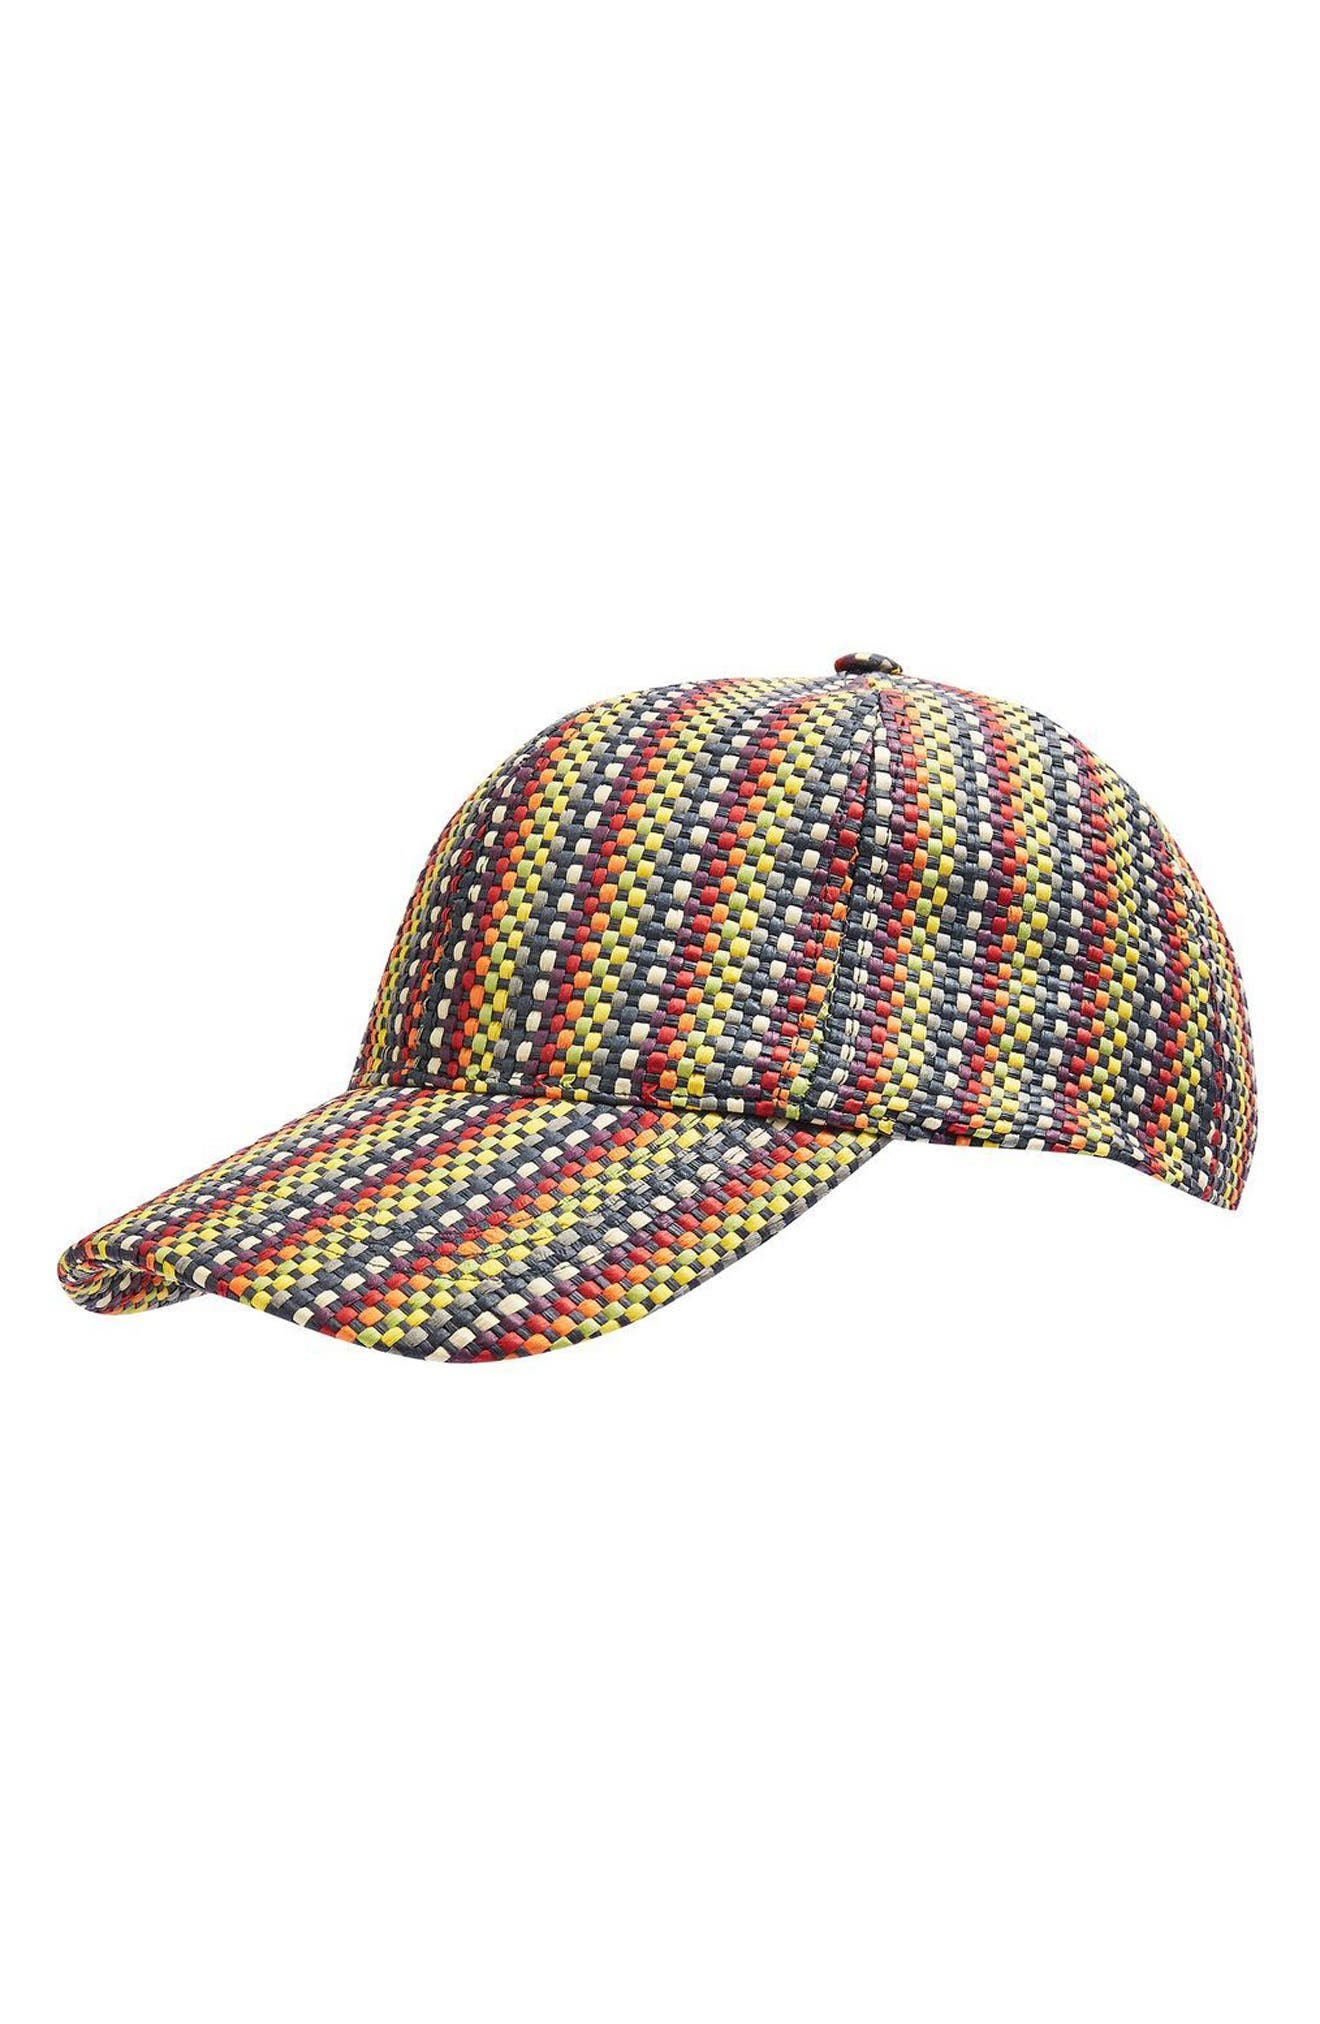 Topshop Colored Straw Baseball Cap